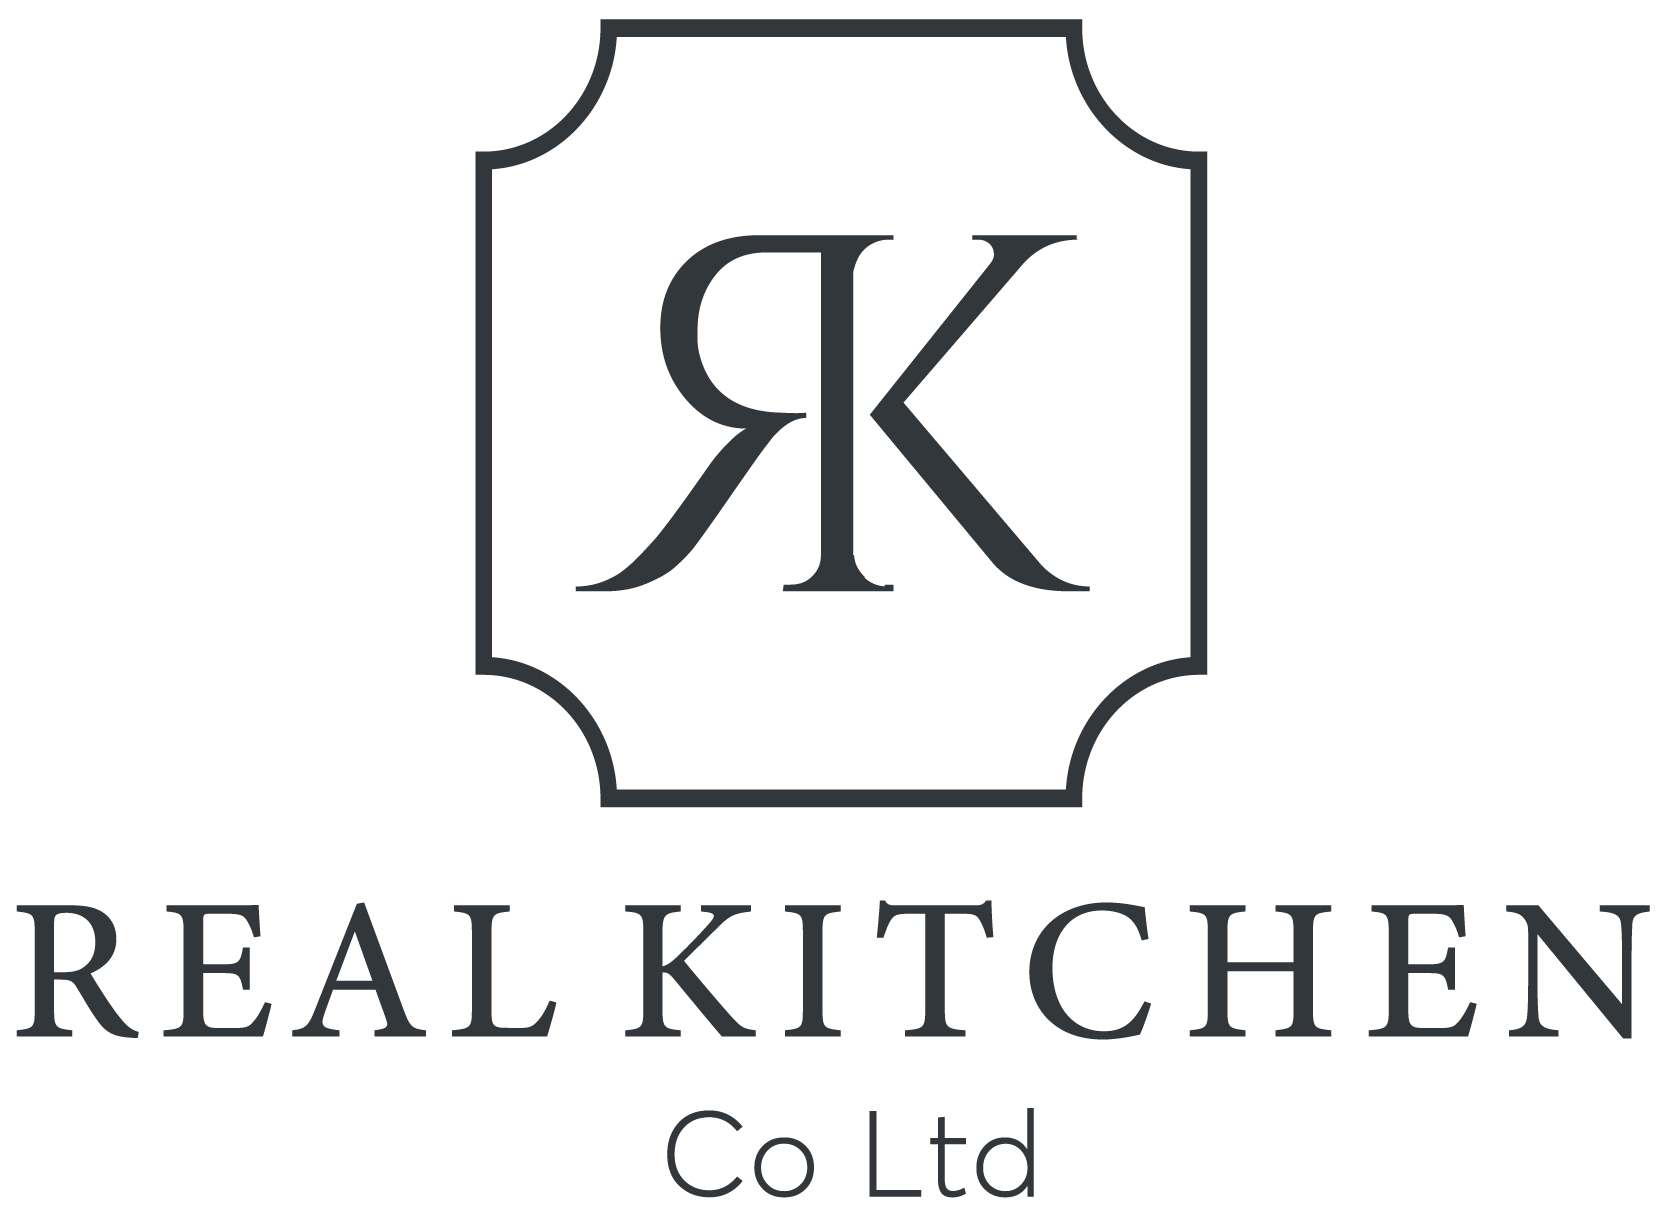 The Real kitchen Company